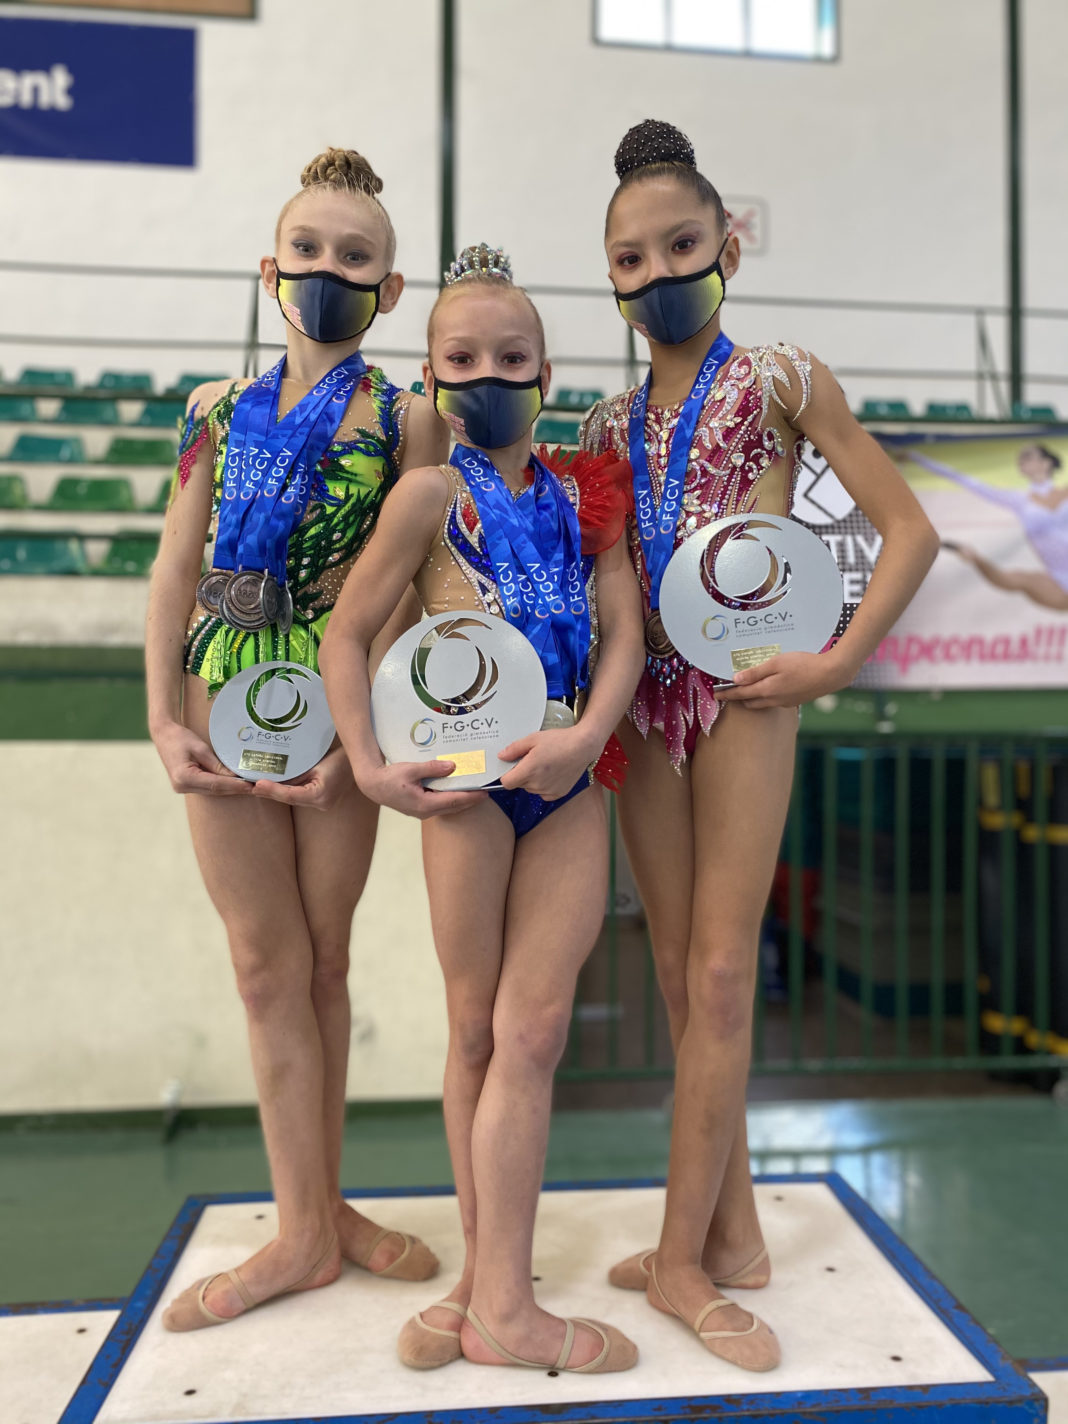 Raining medals on Jennifer Colino Rhythmic Gymnasts